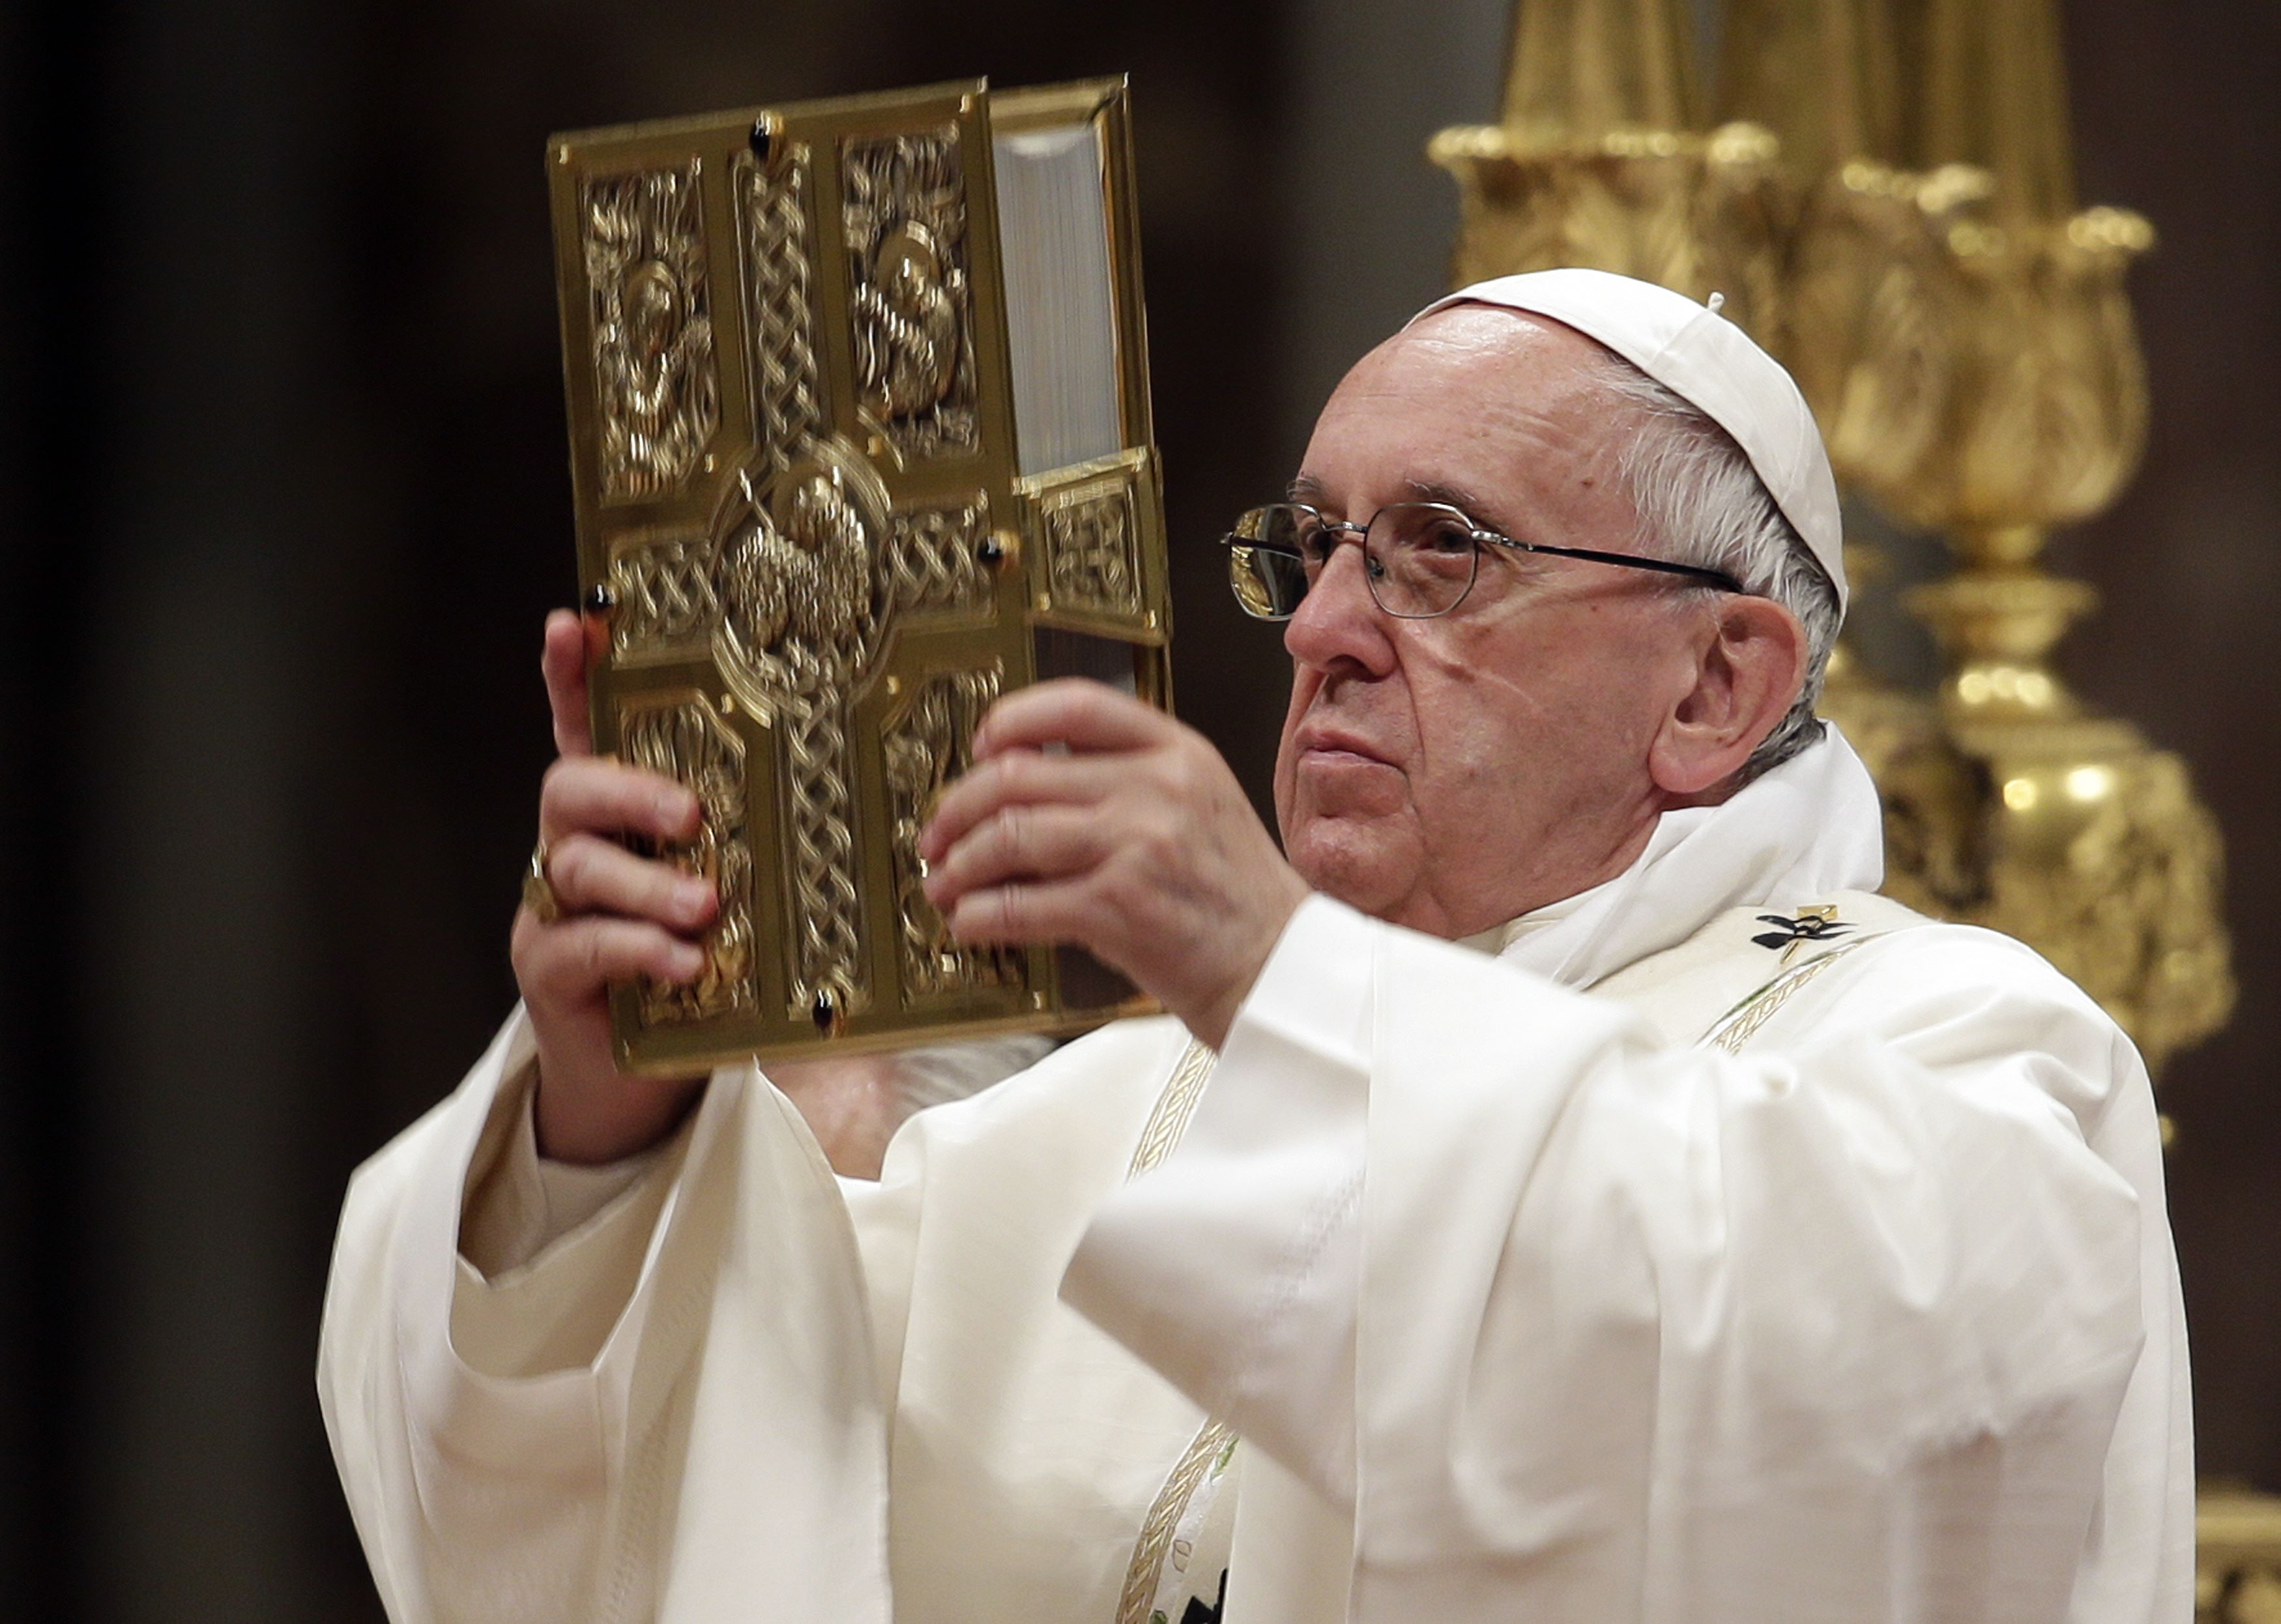 Feel the pain of the poor and immigrants, pope says at Easter Vigil